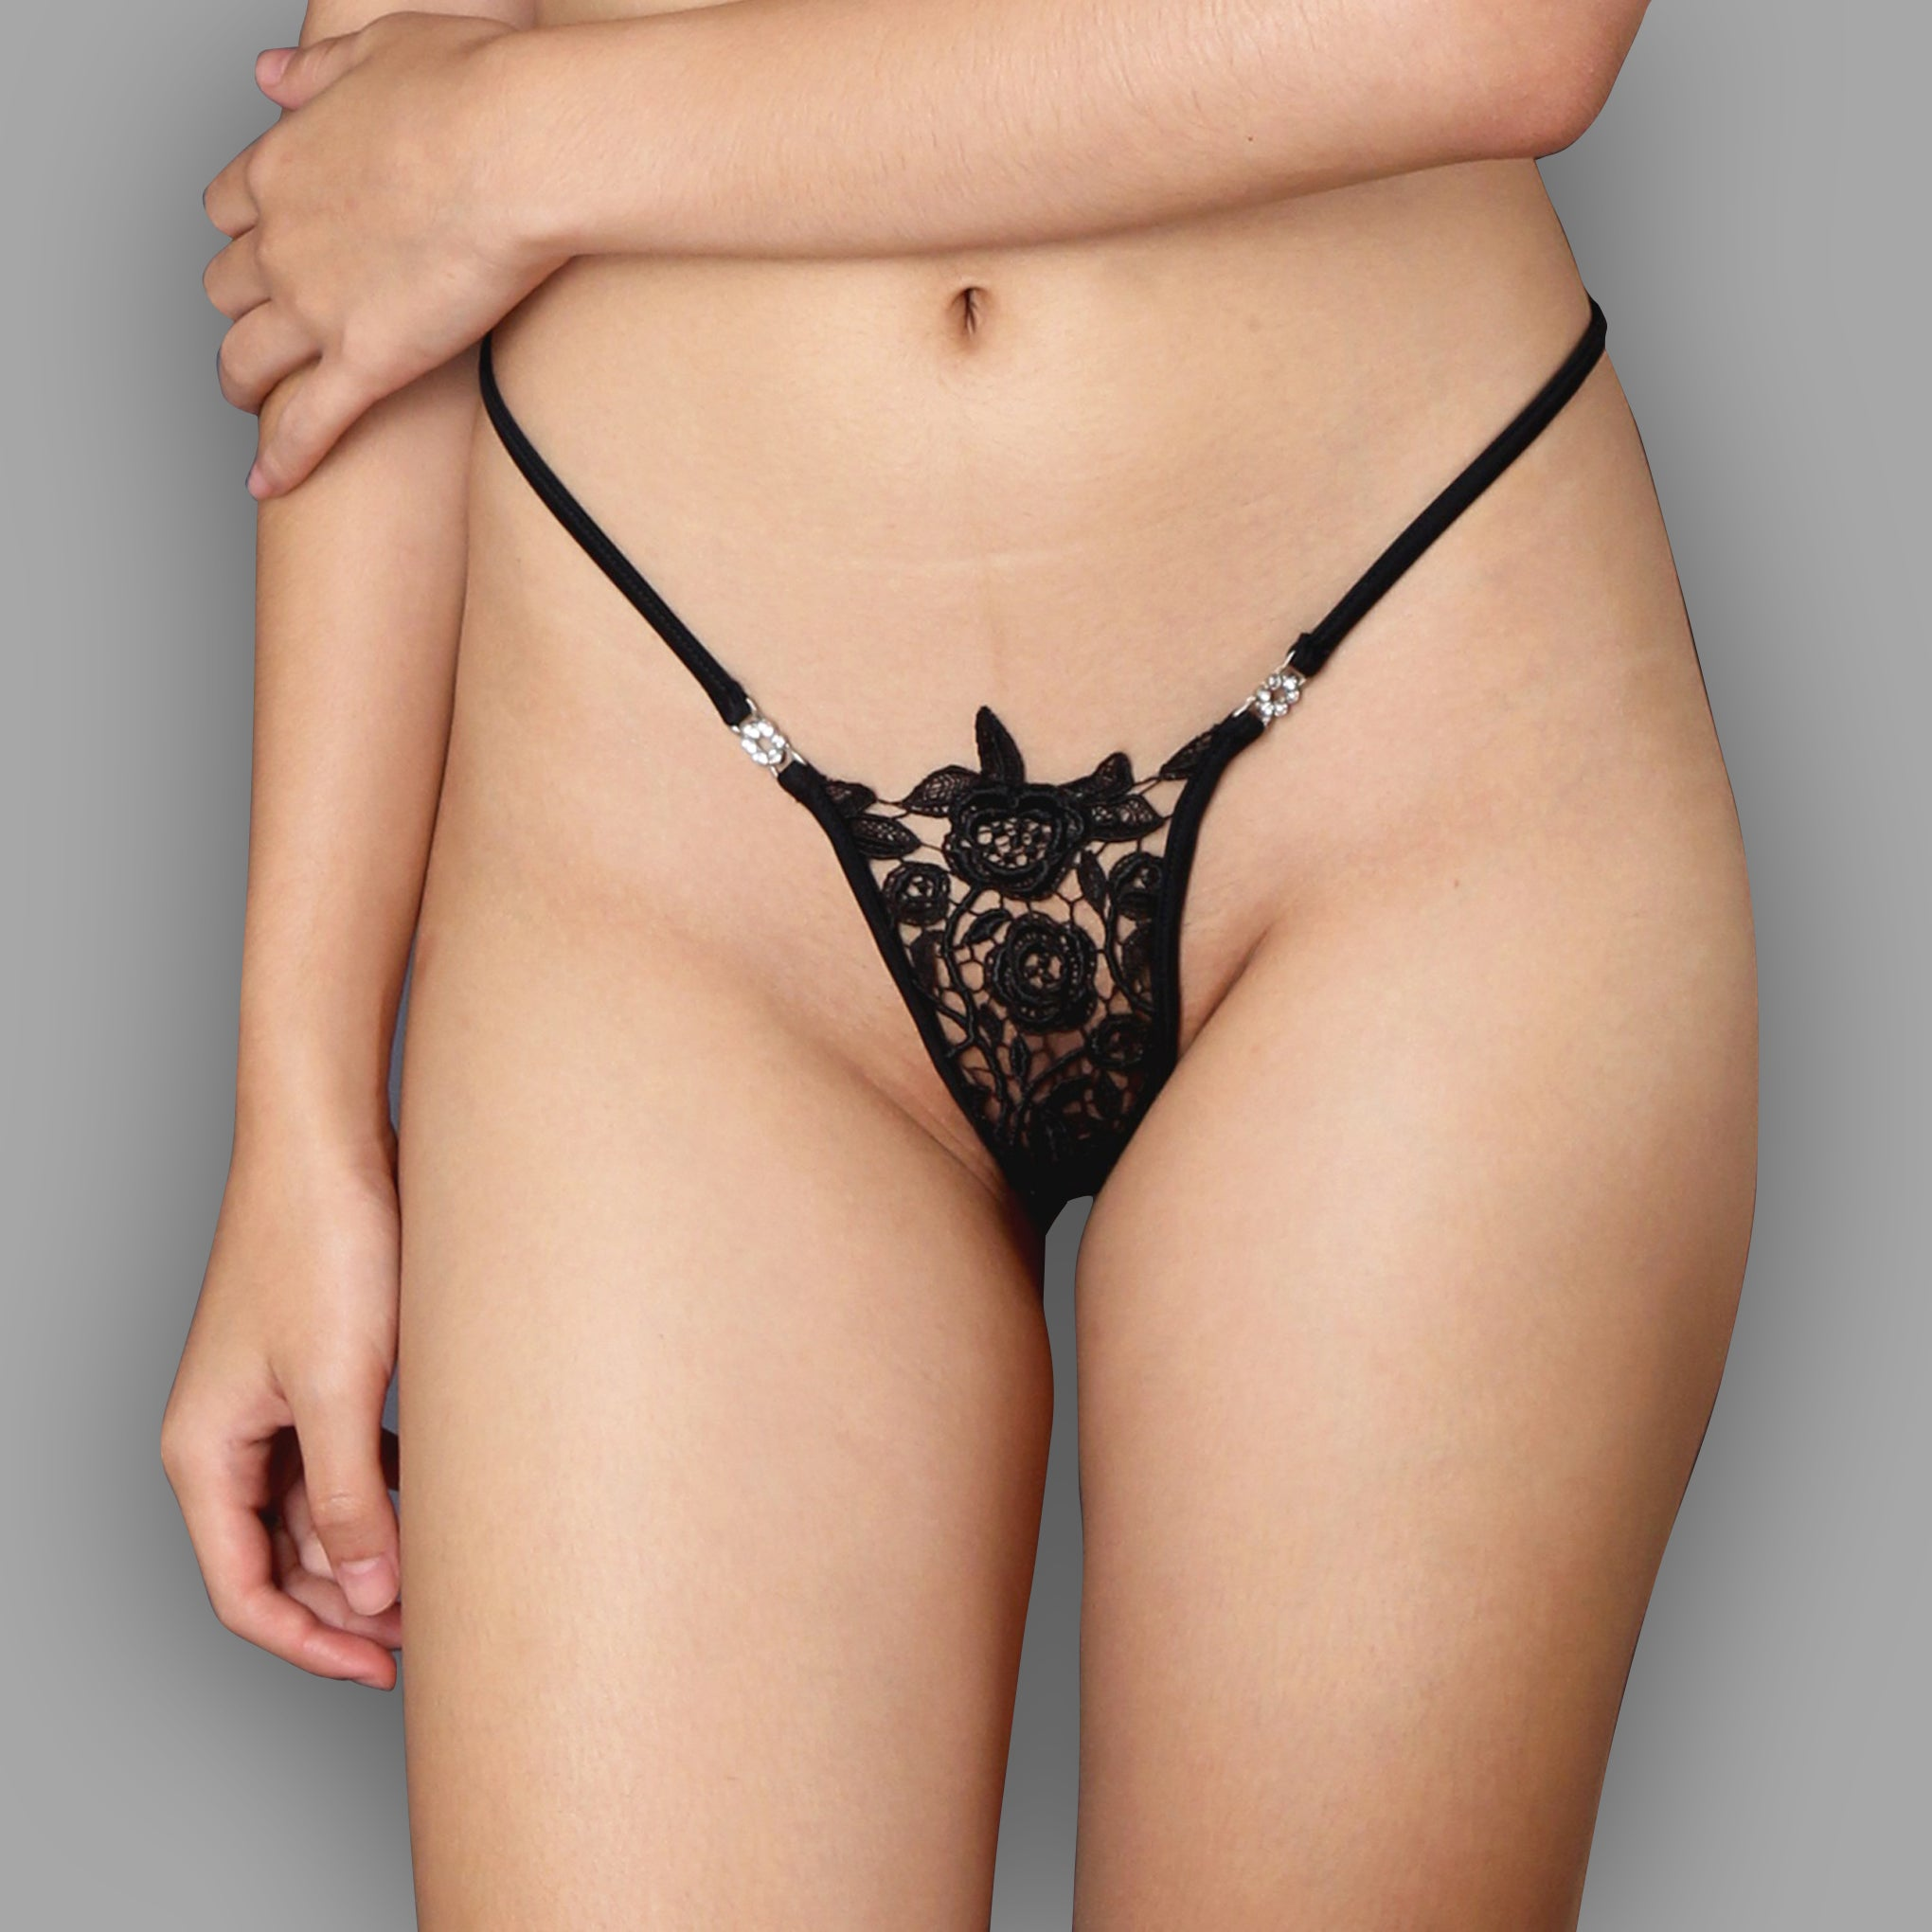 Sheer lingerie,Black lace g string, Thong, sheer pantie, Erotic lingerie,Black Lace lingerie by Ange Dechu - Ange Déchu